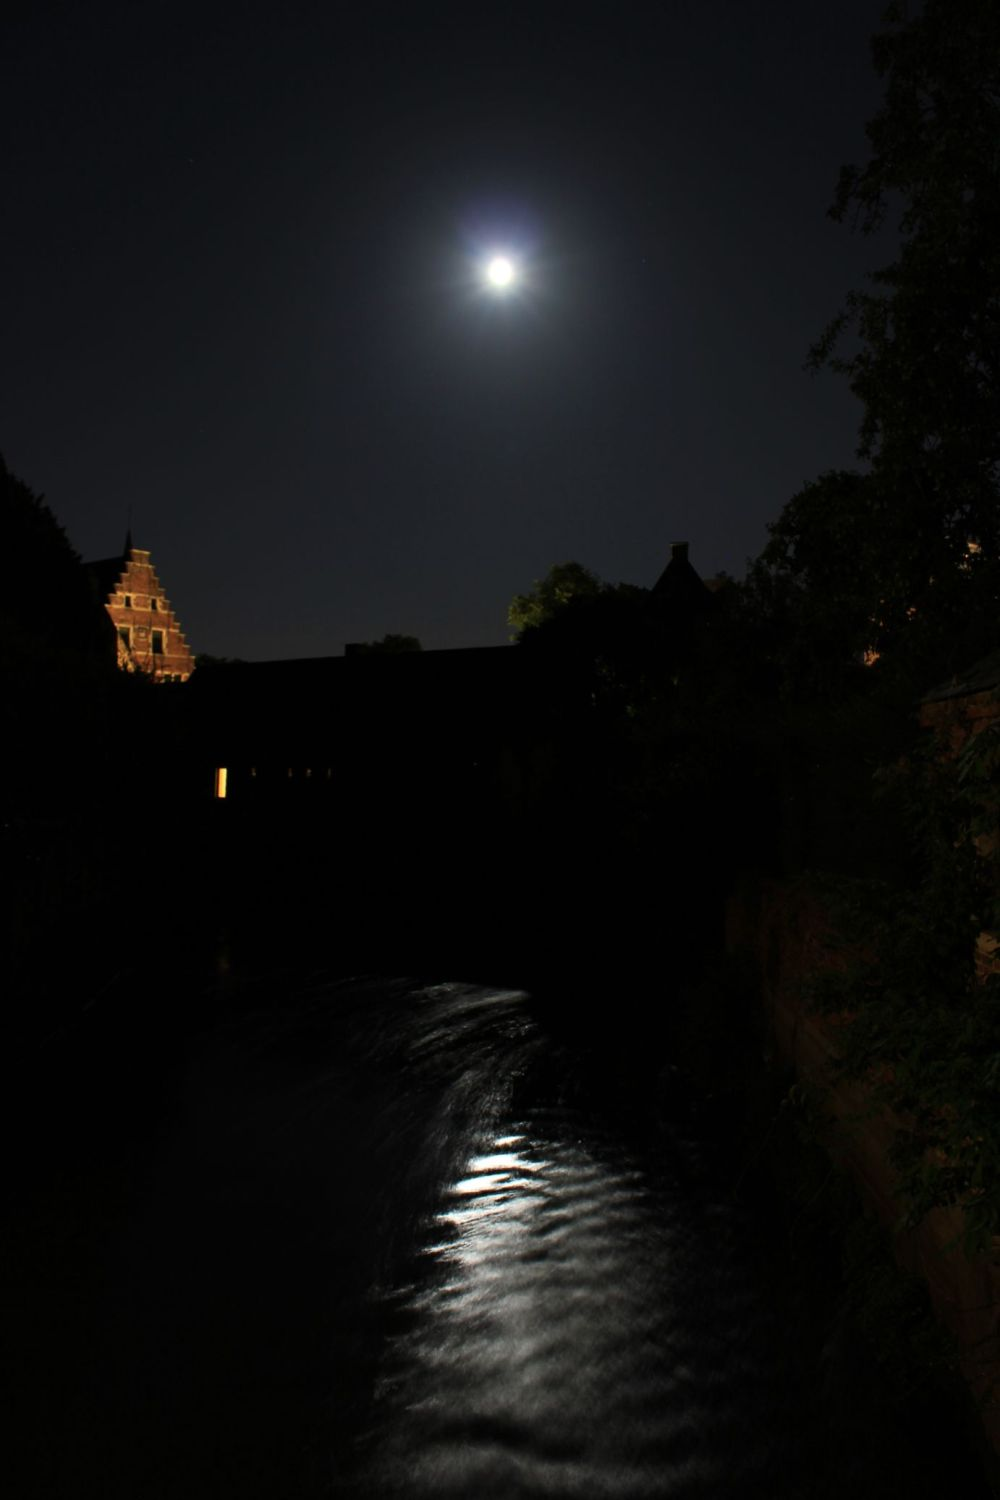 Full moon over the Leuven beguinage